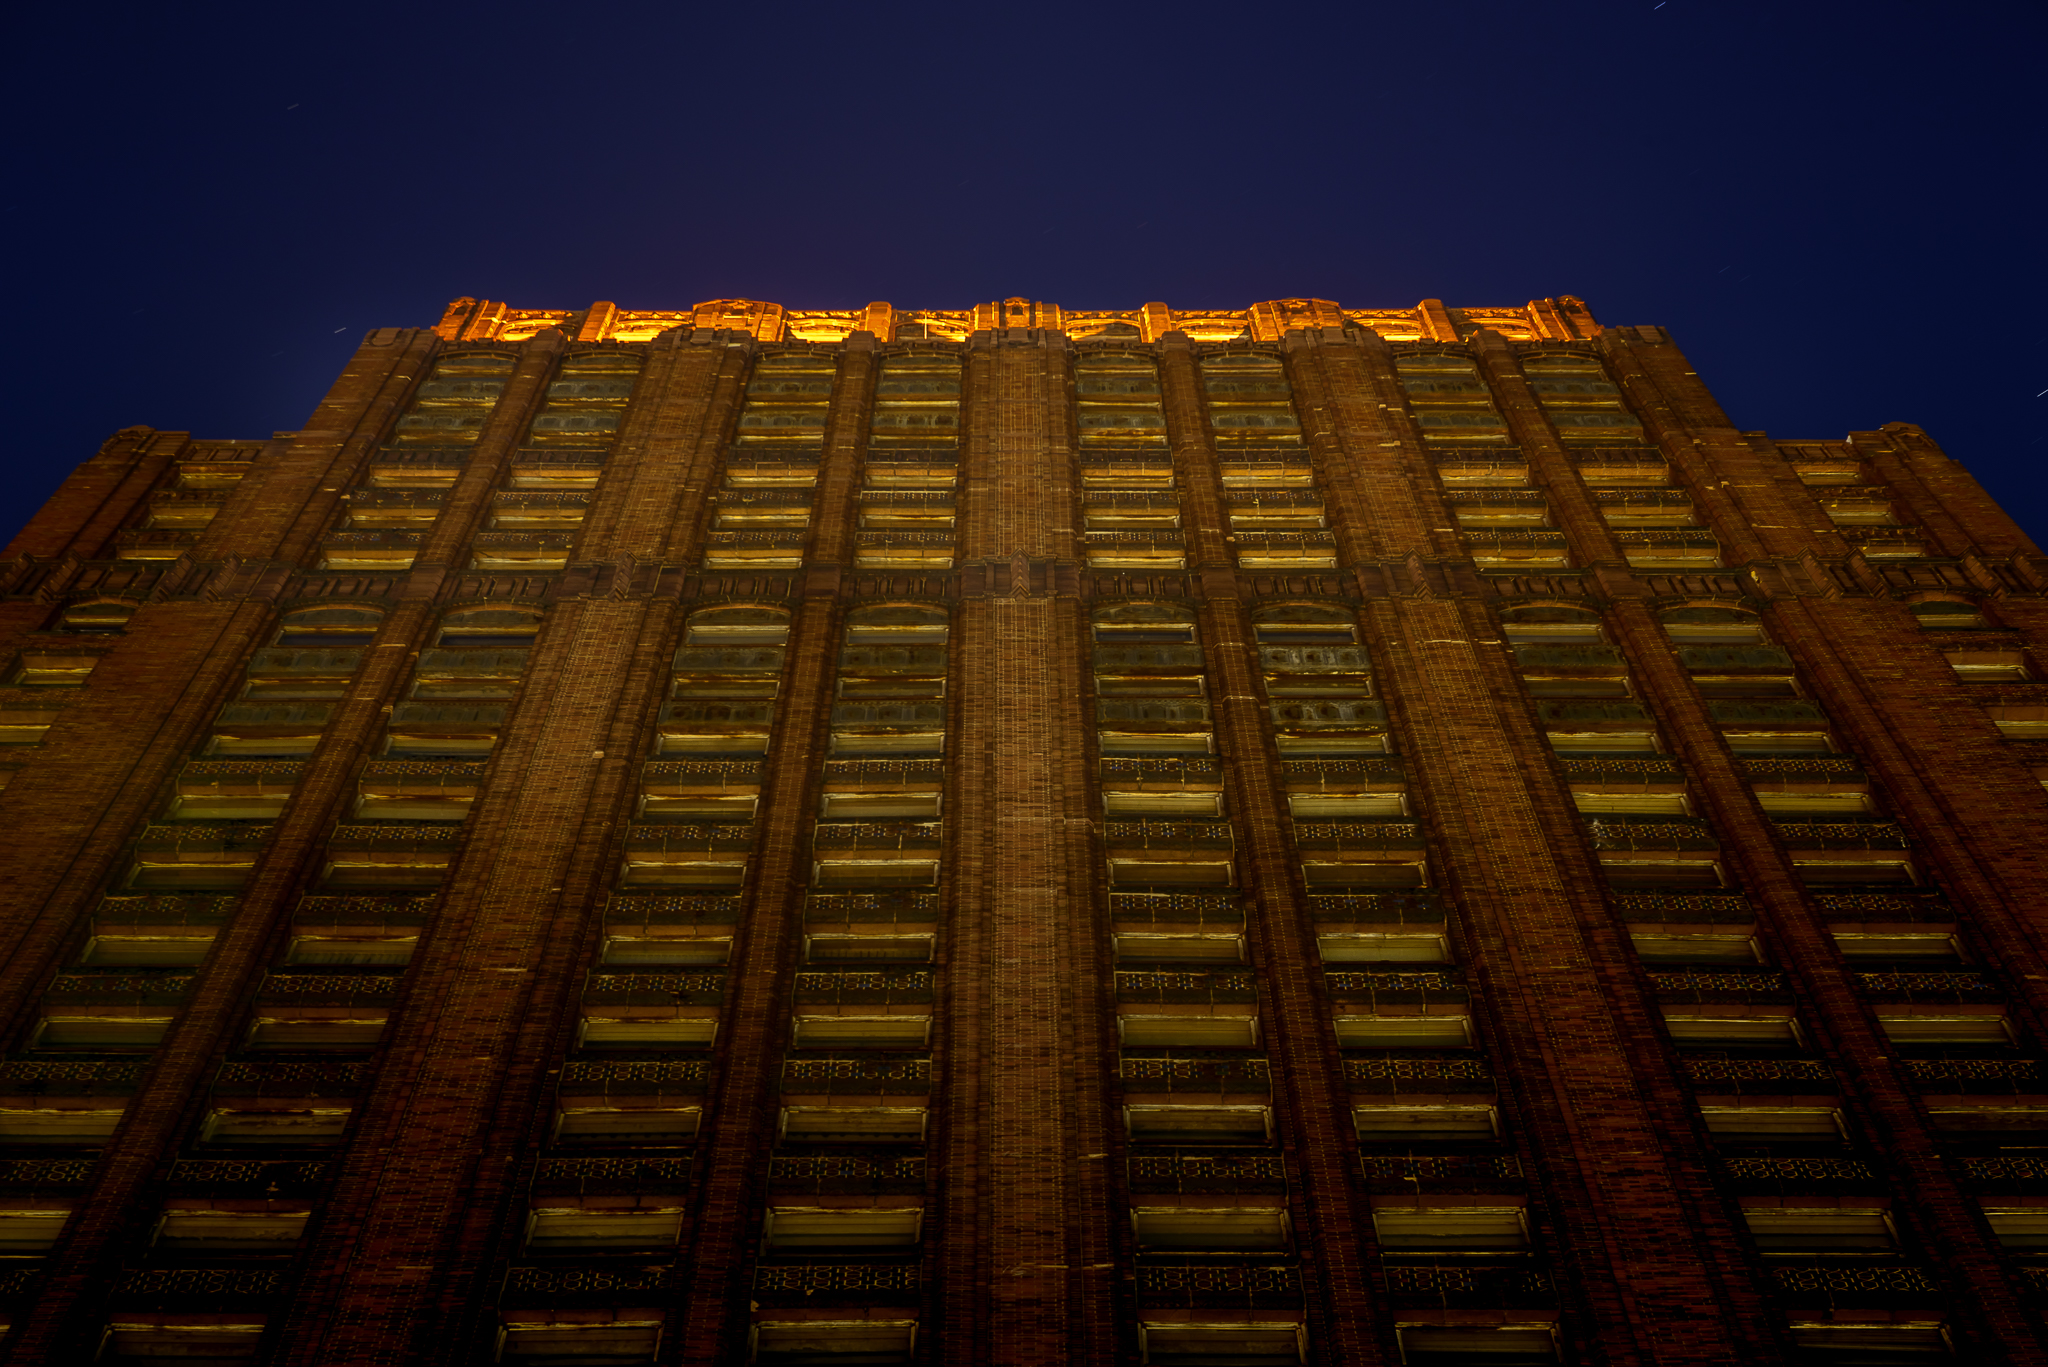 detroit_david_stott_building_new_lights.jpg